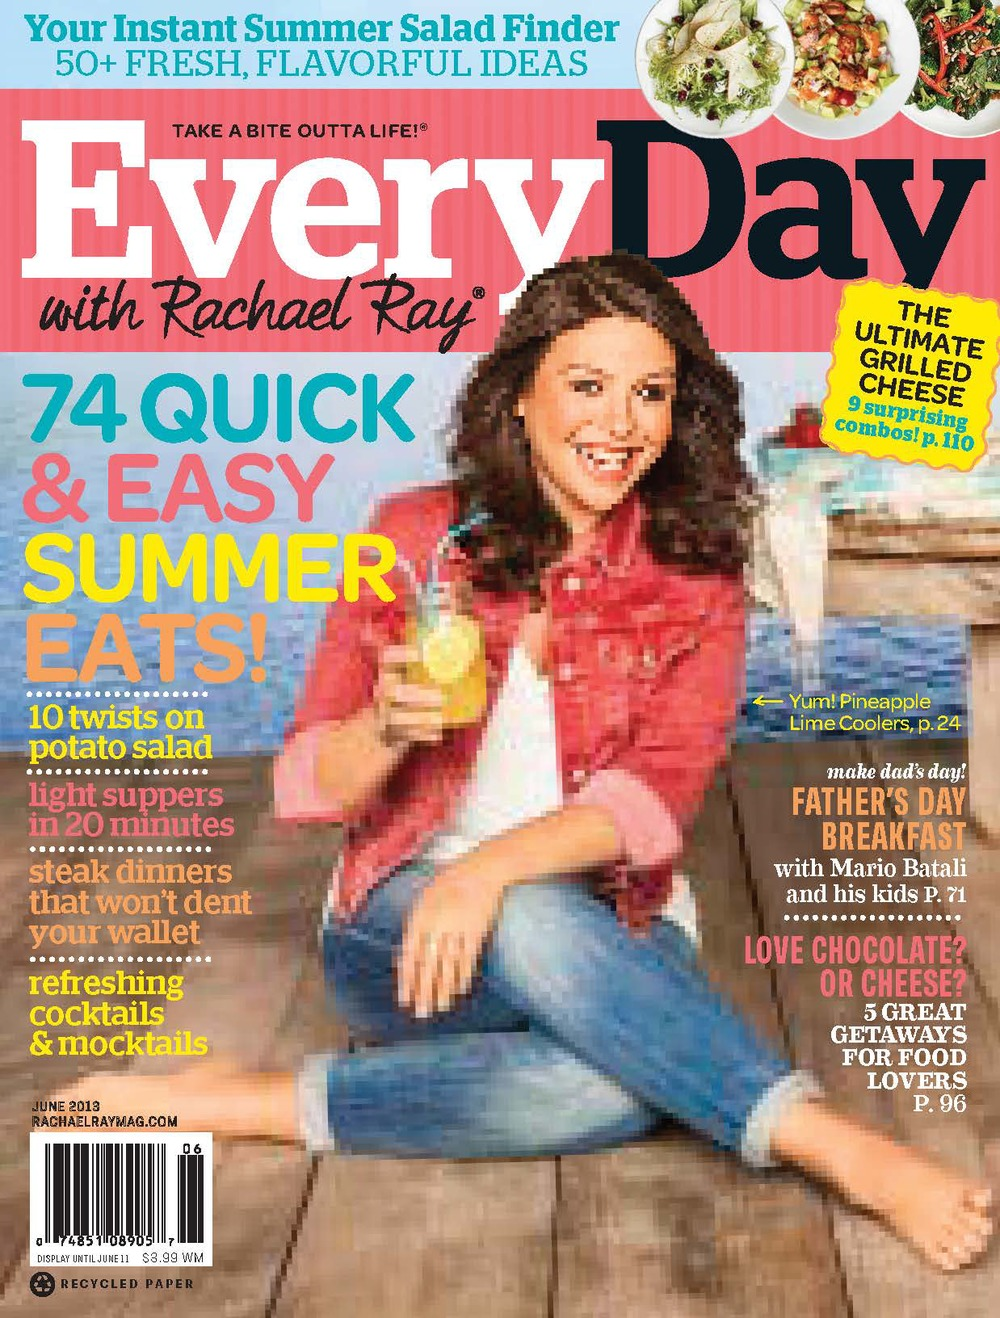 Copyright © Every Day with Rachael Ray Magazine